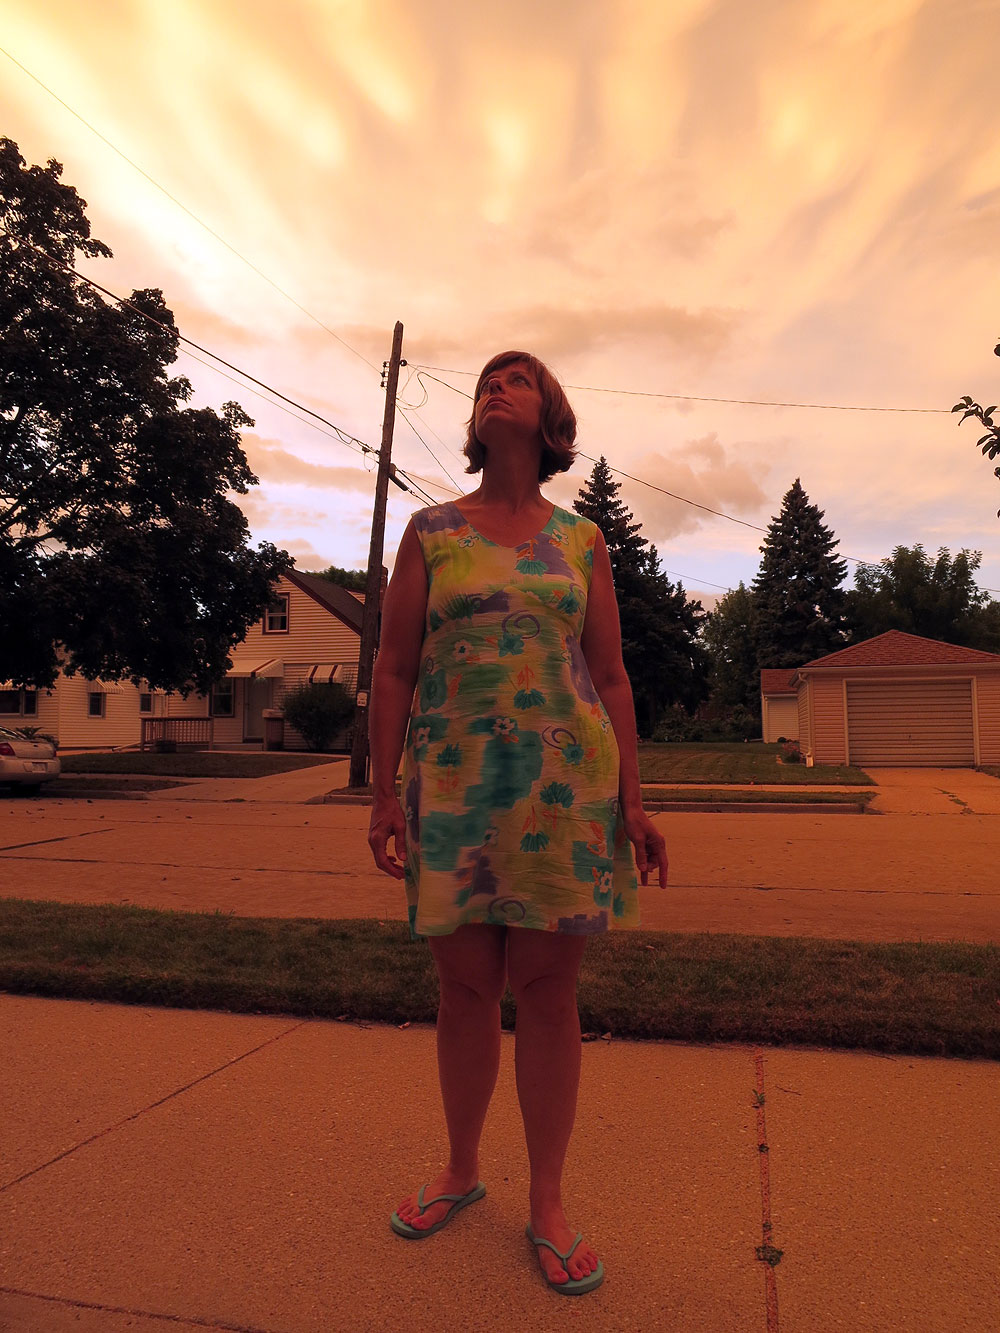 Breast cancer patient Amy Czerniec in Racine, Wisconsin at sunset